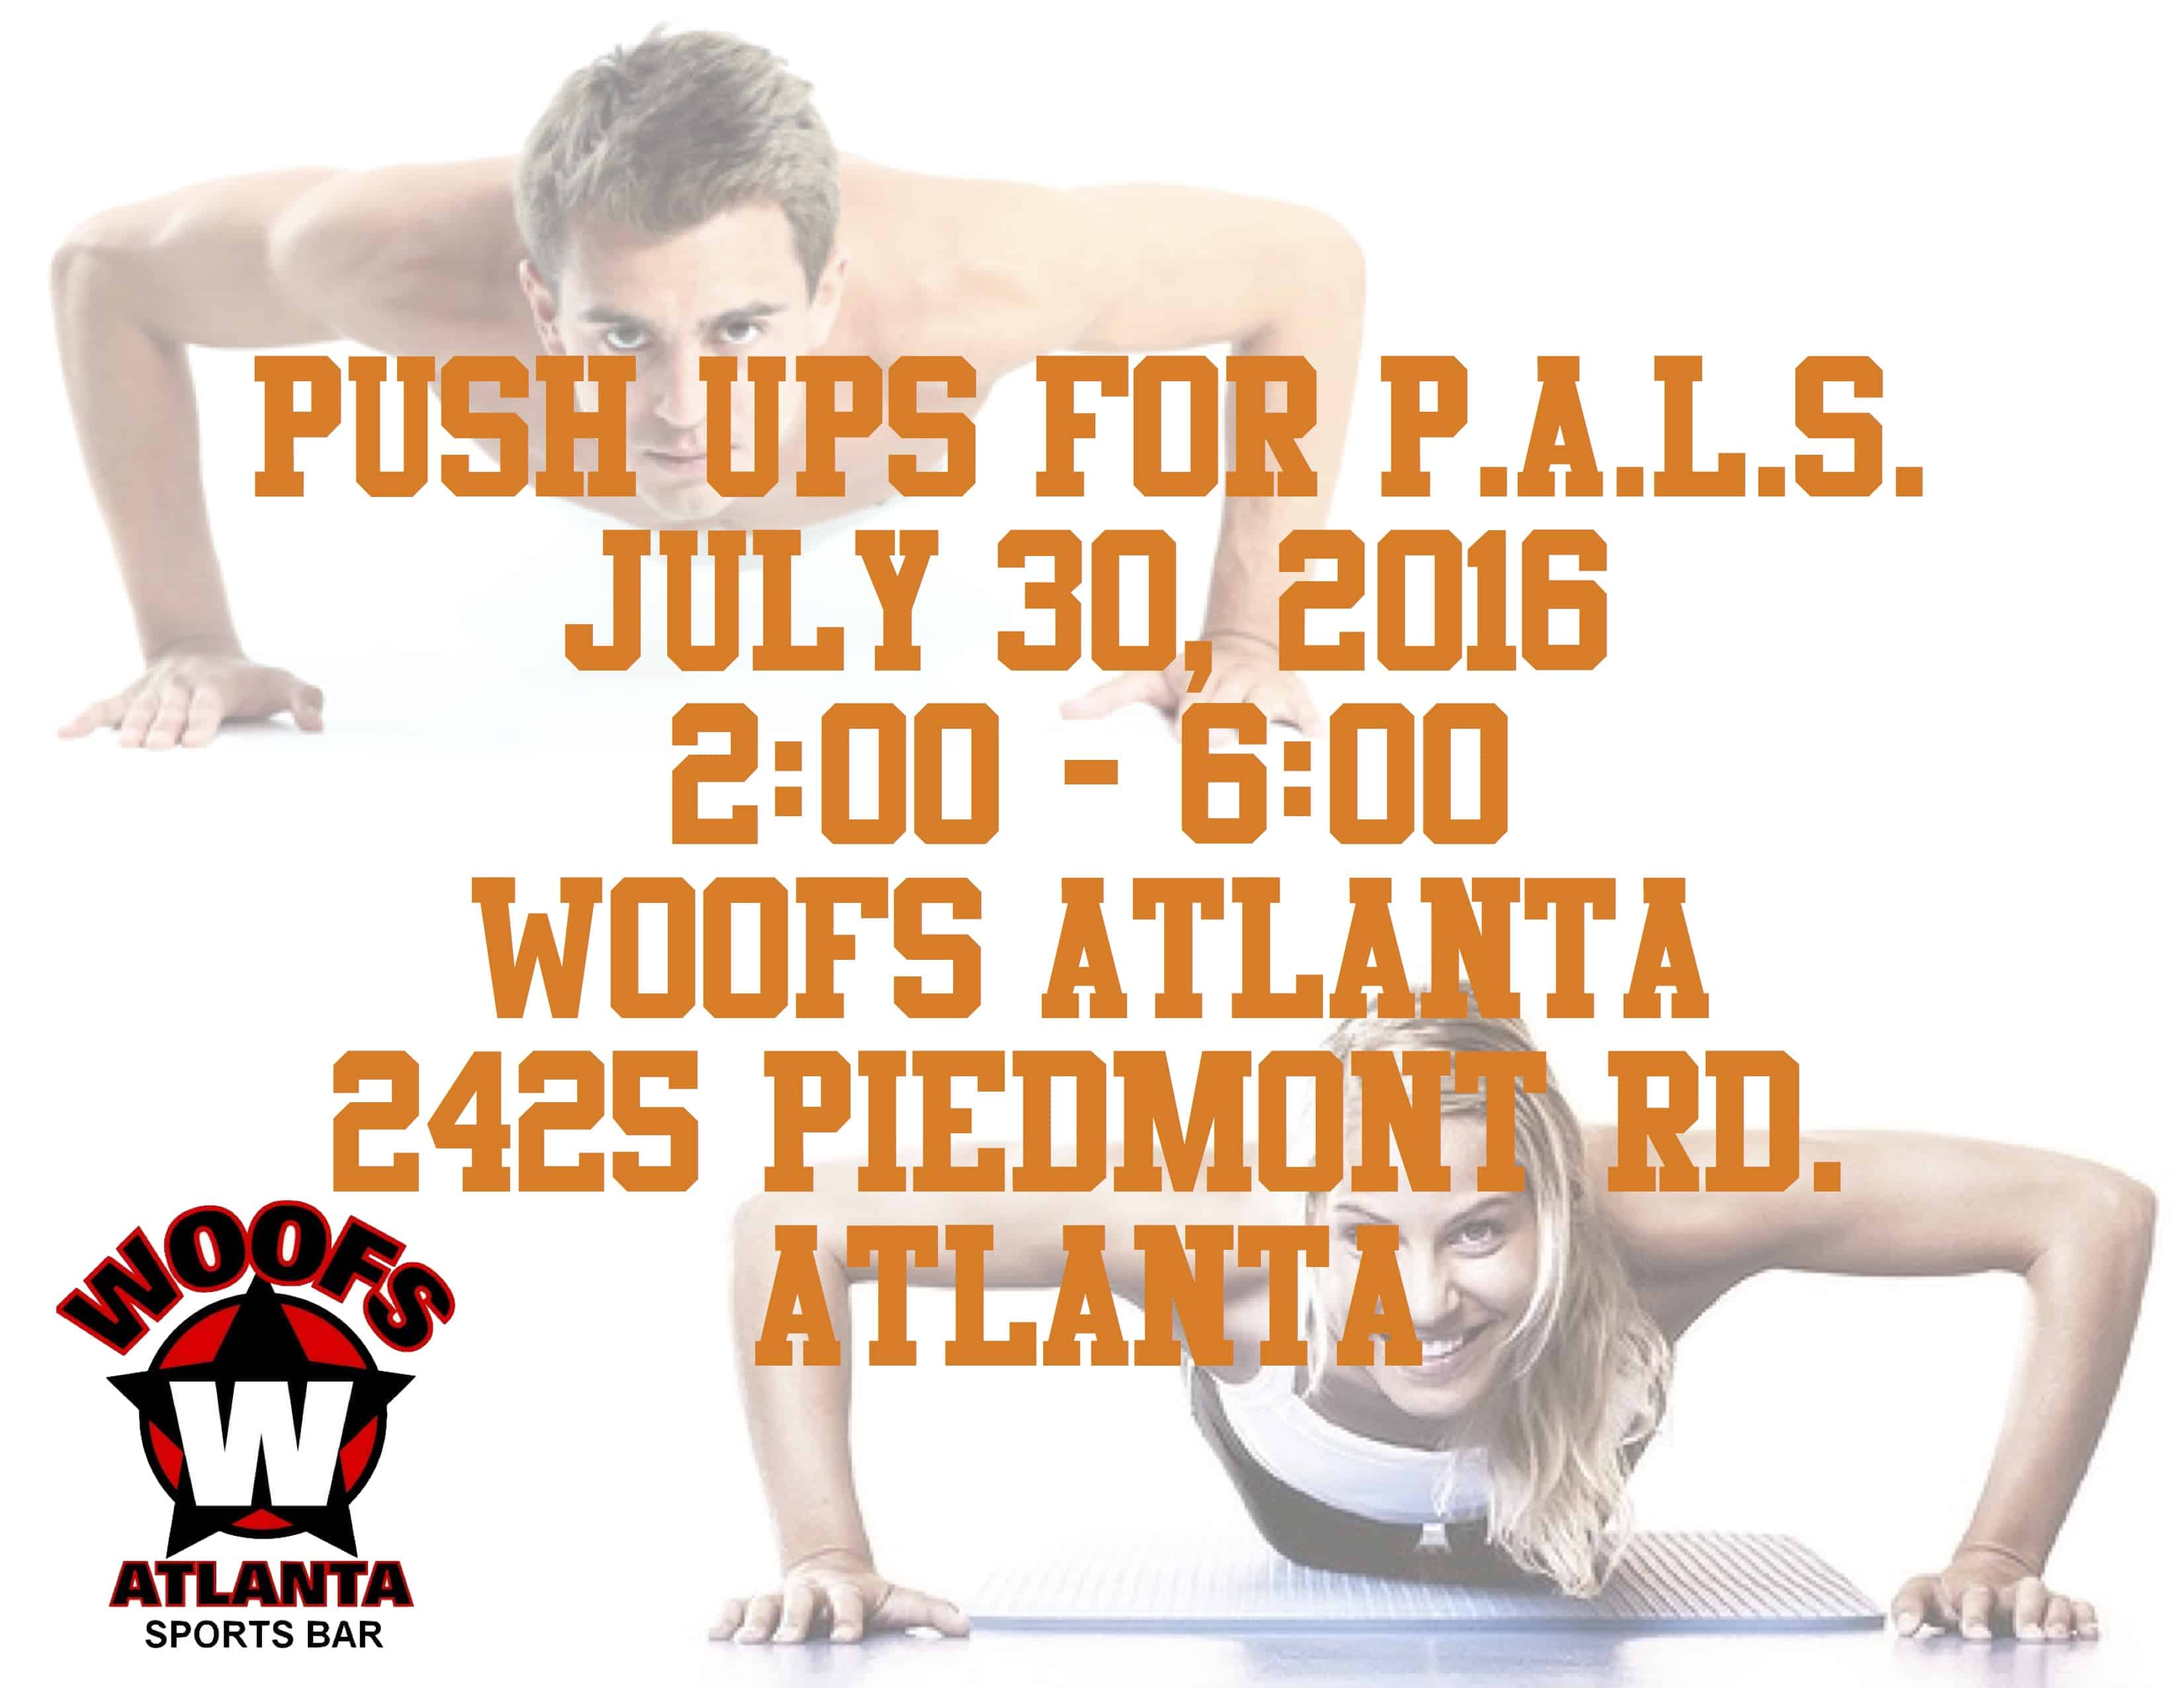 Push Up for P.A.L.S.